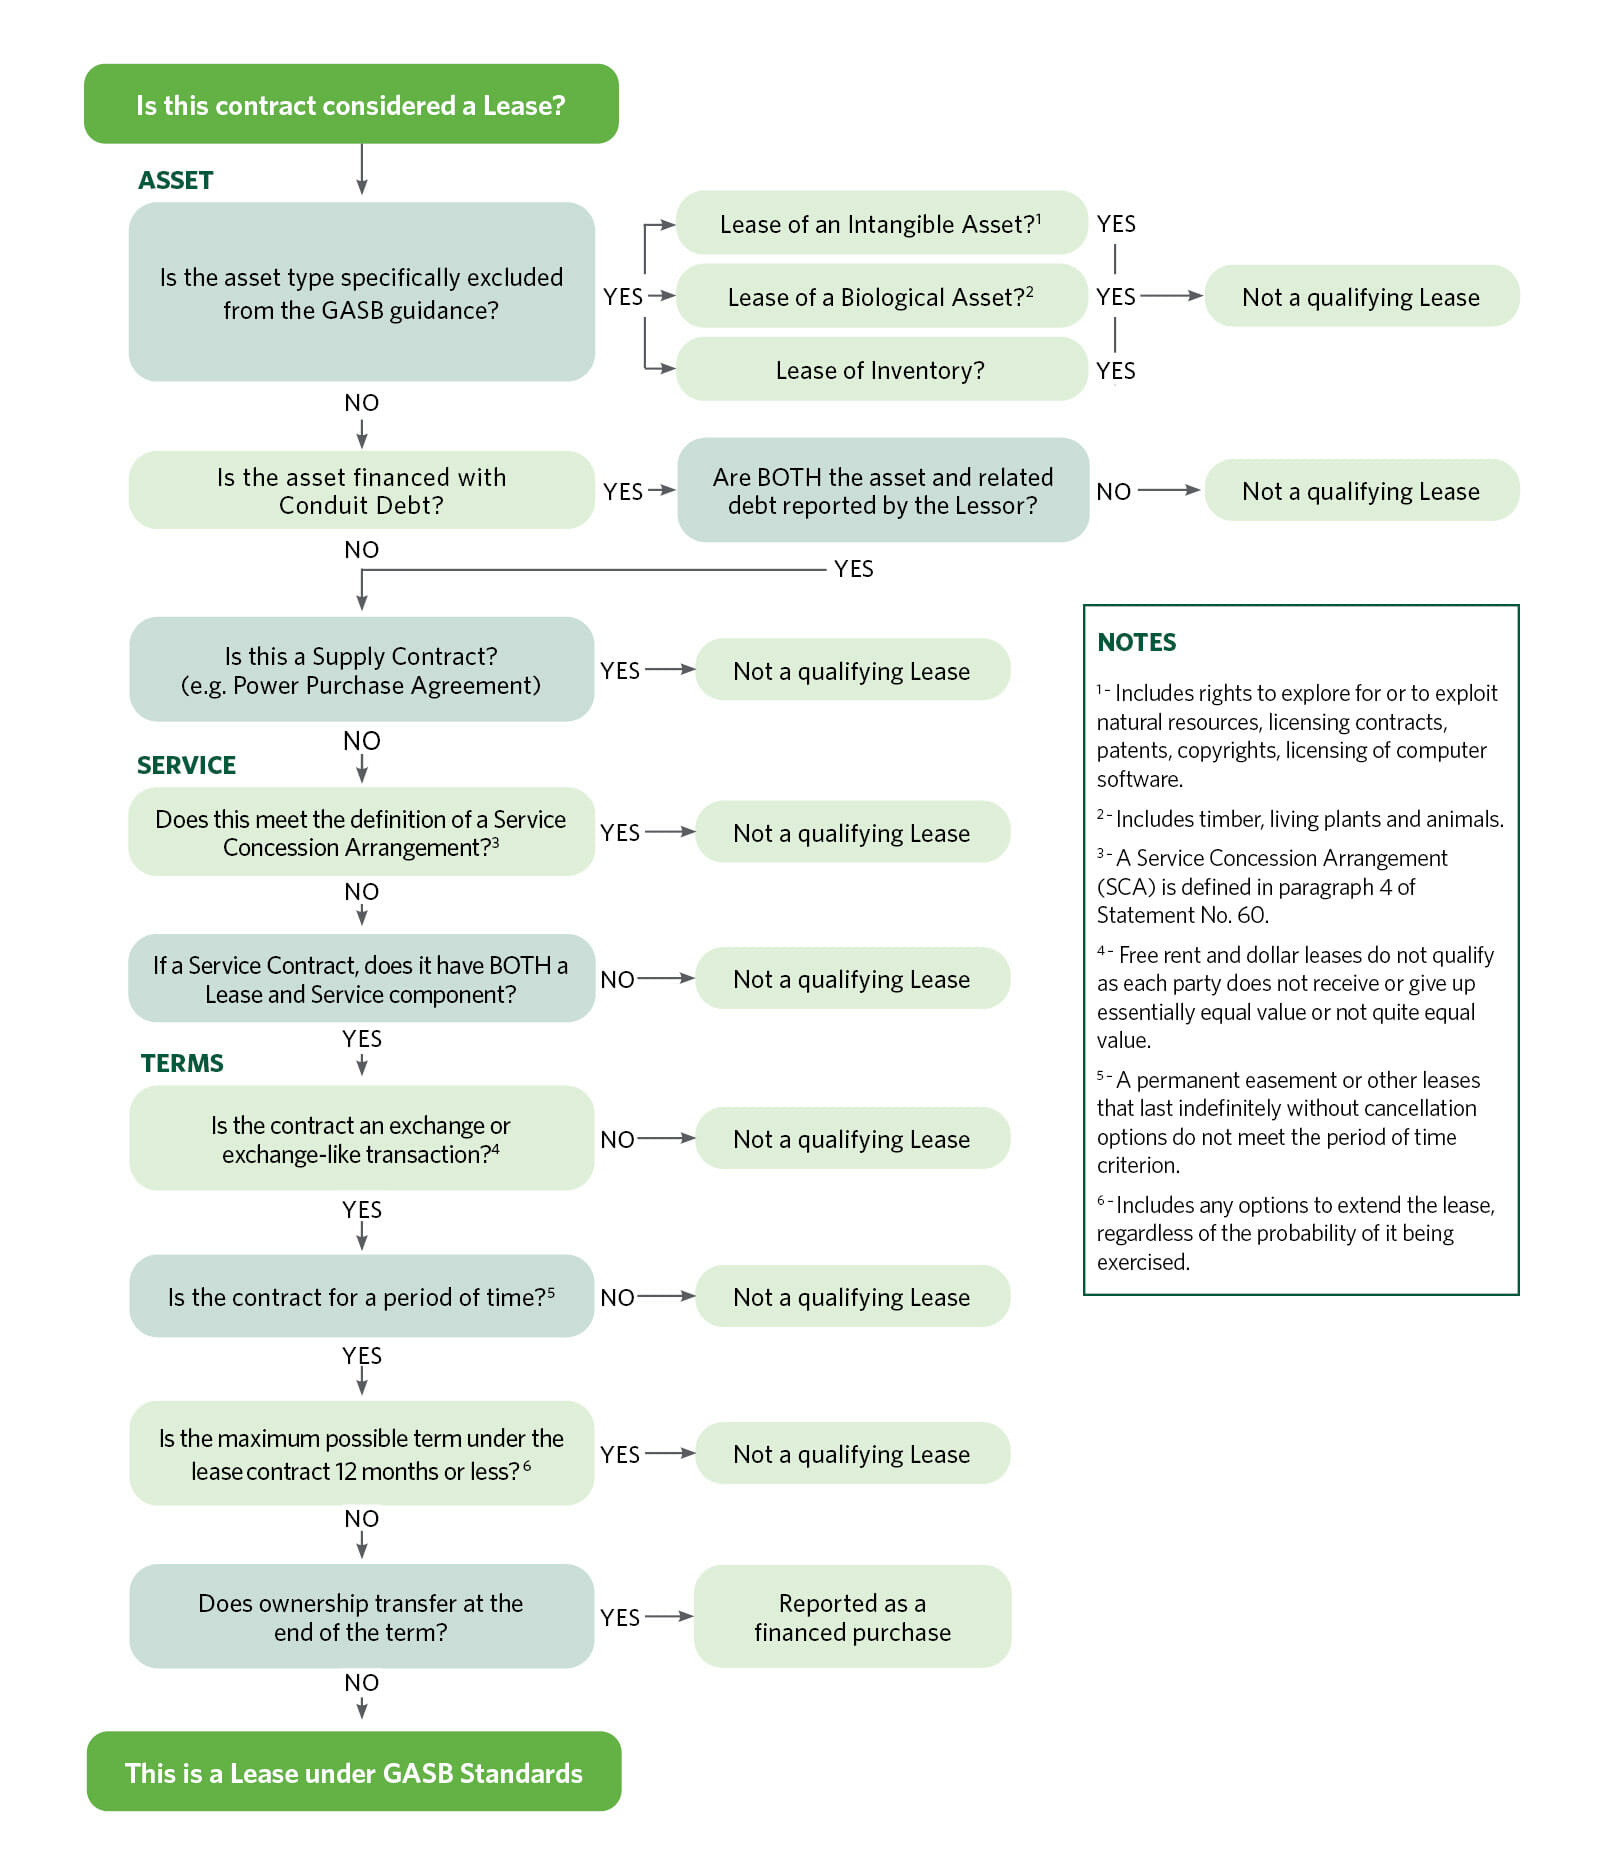 GASB 87 Lease Implementation Decision Tree